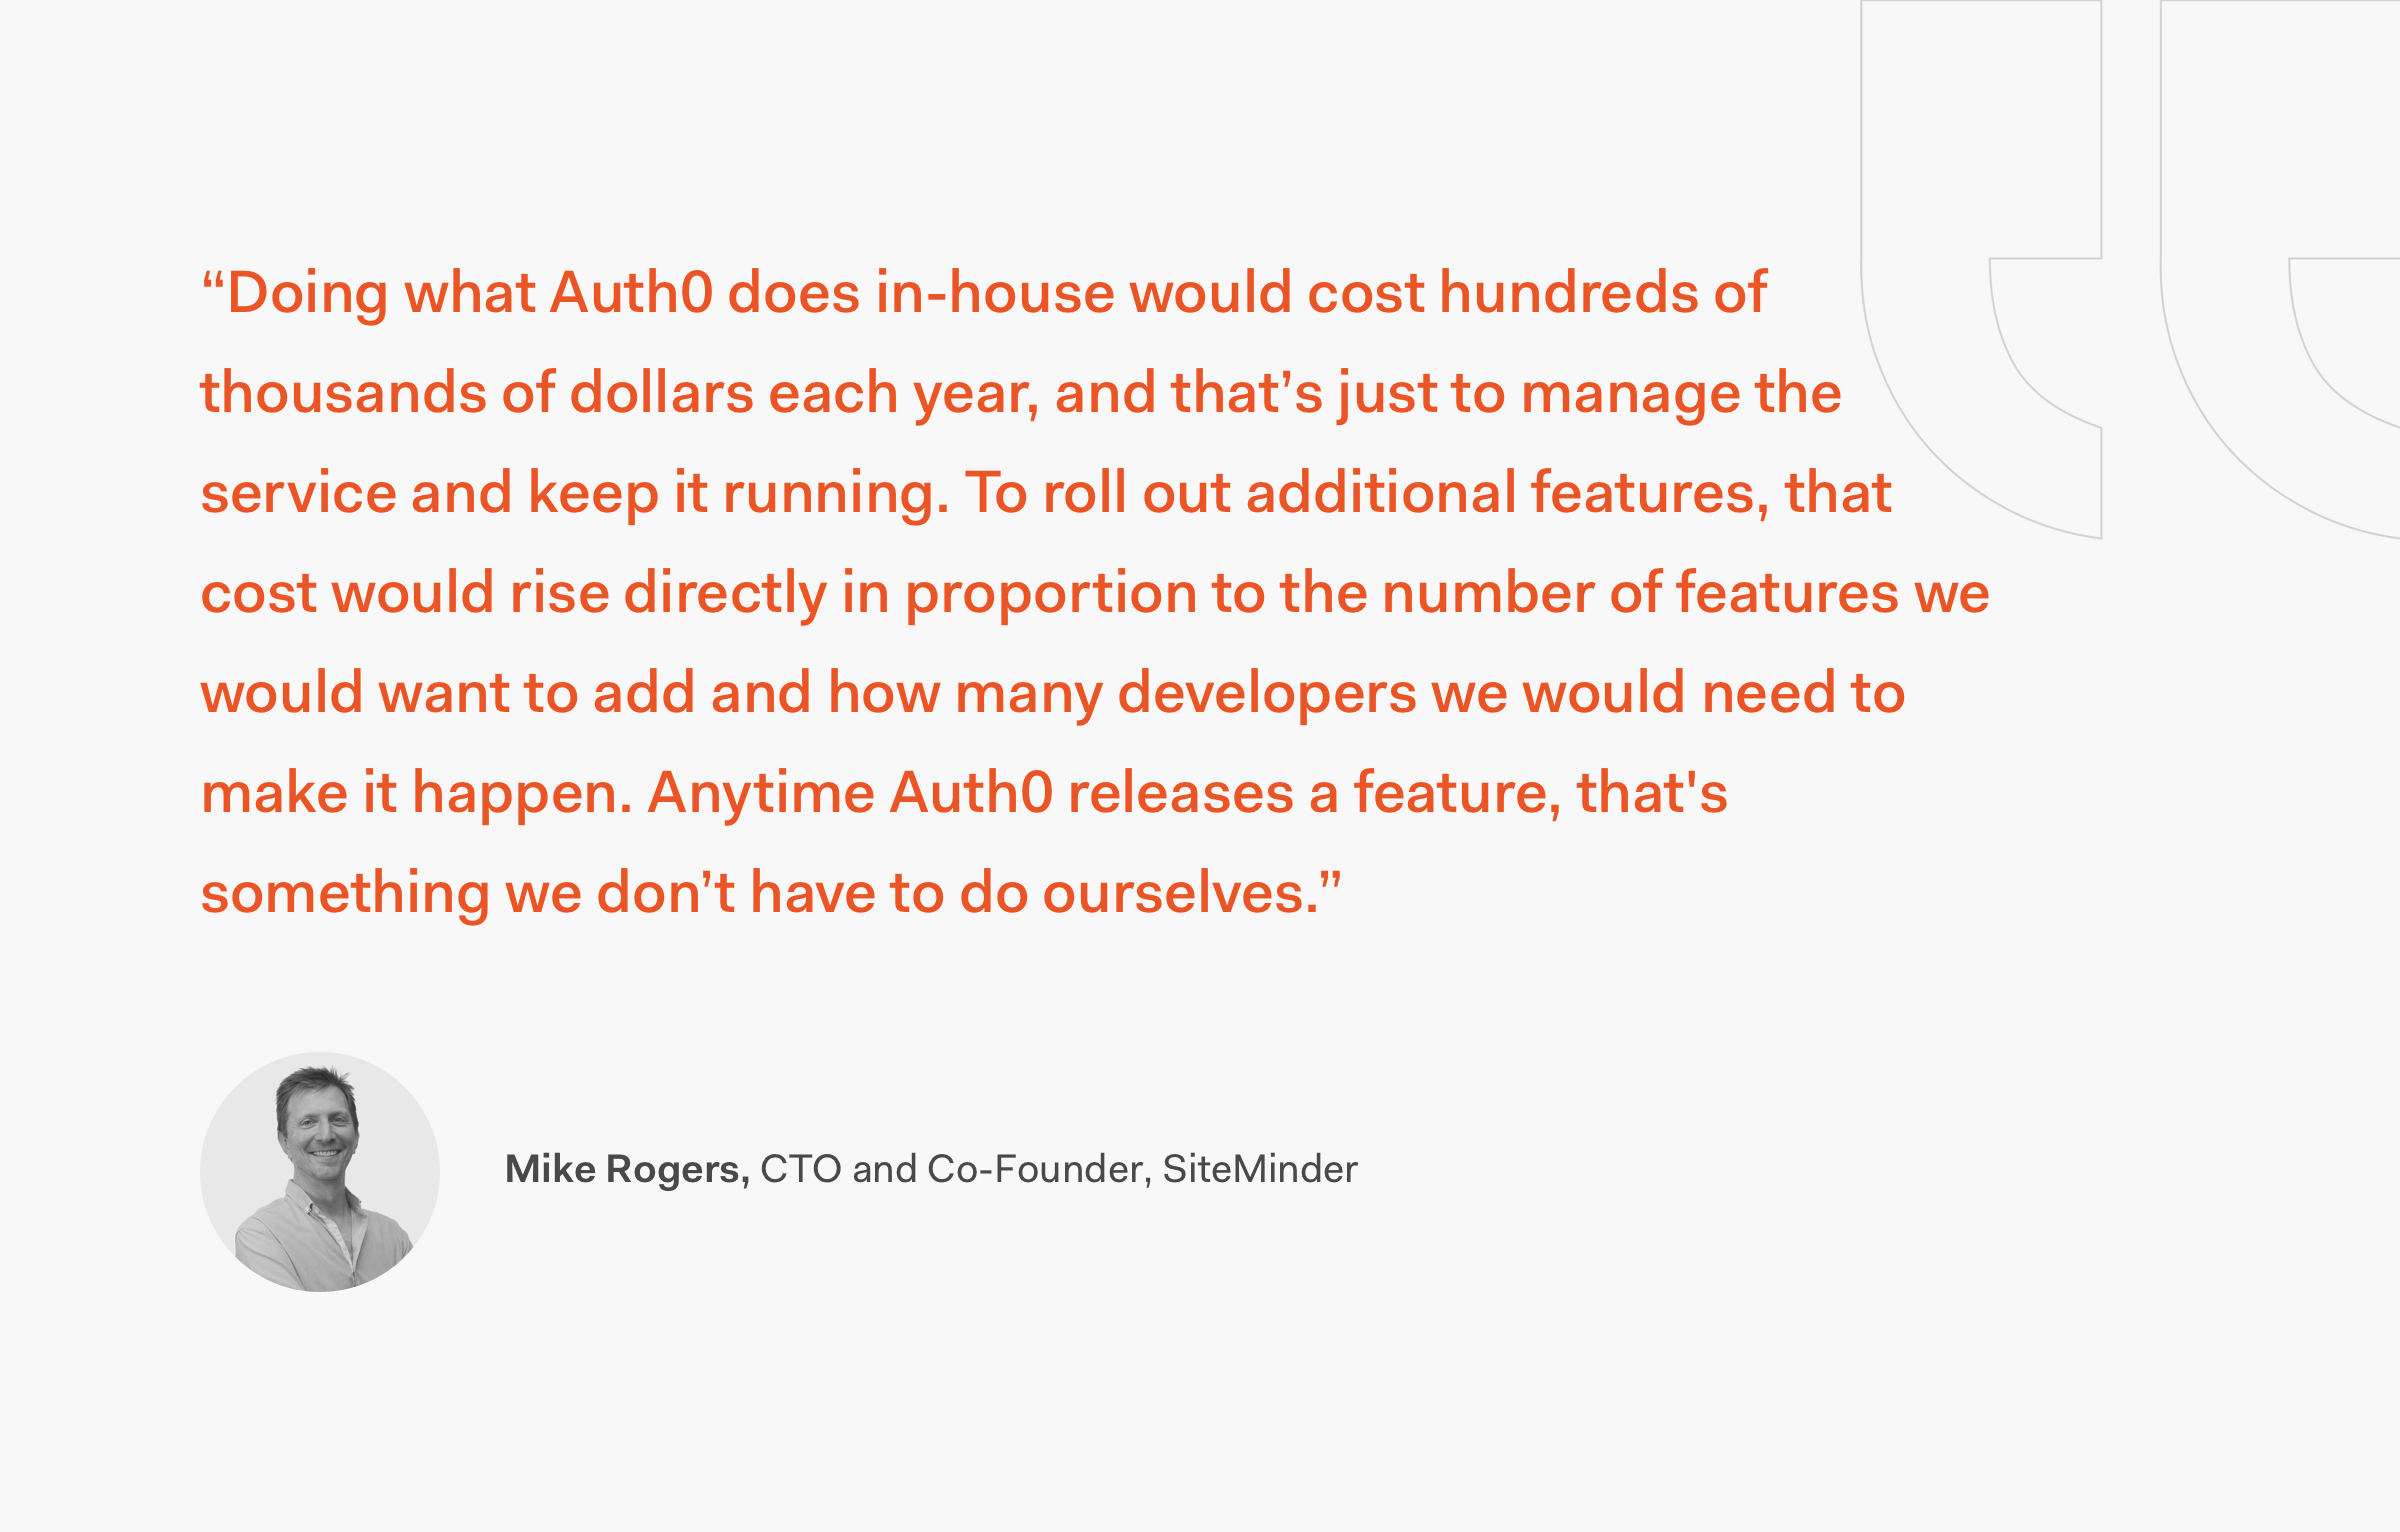 Mike Rogers CTO SiteMinder Quote